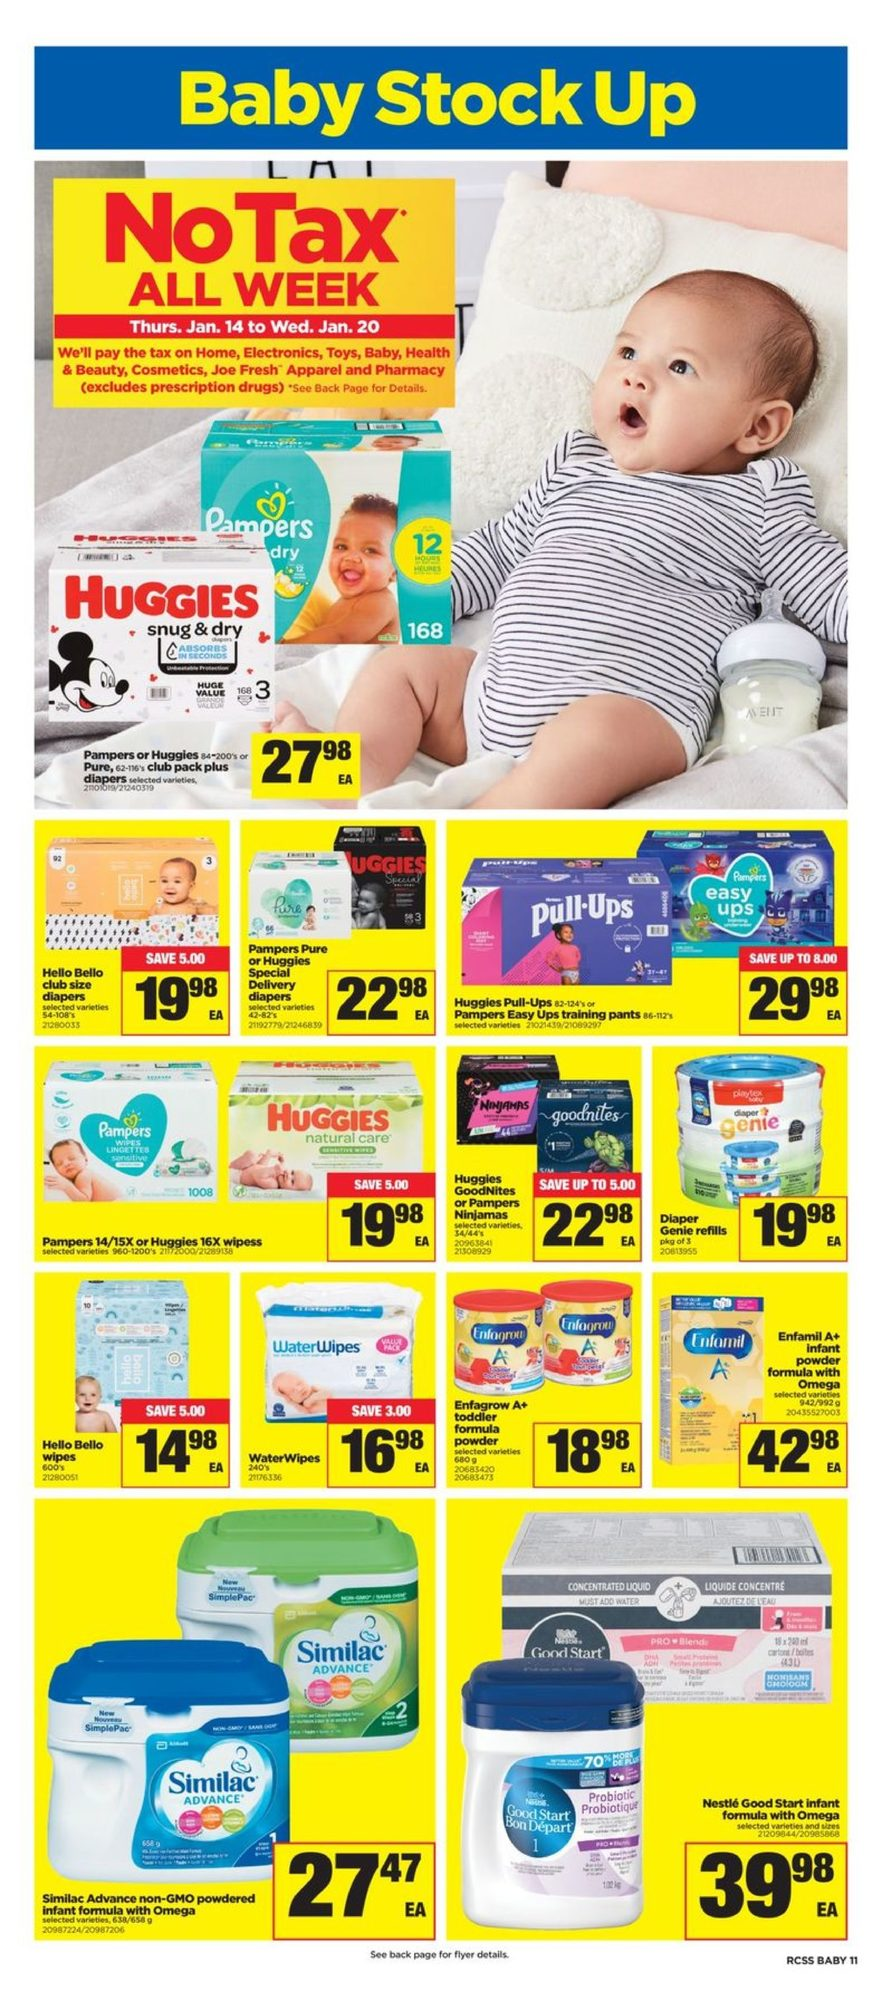 Real Canadian Superstore - Weekly Flyer Specials - Page 11